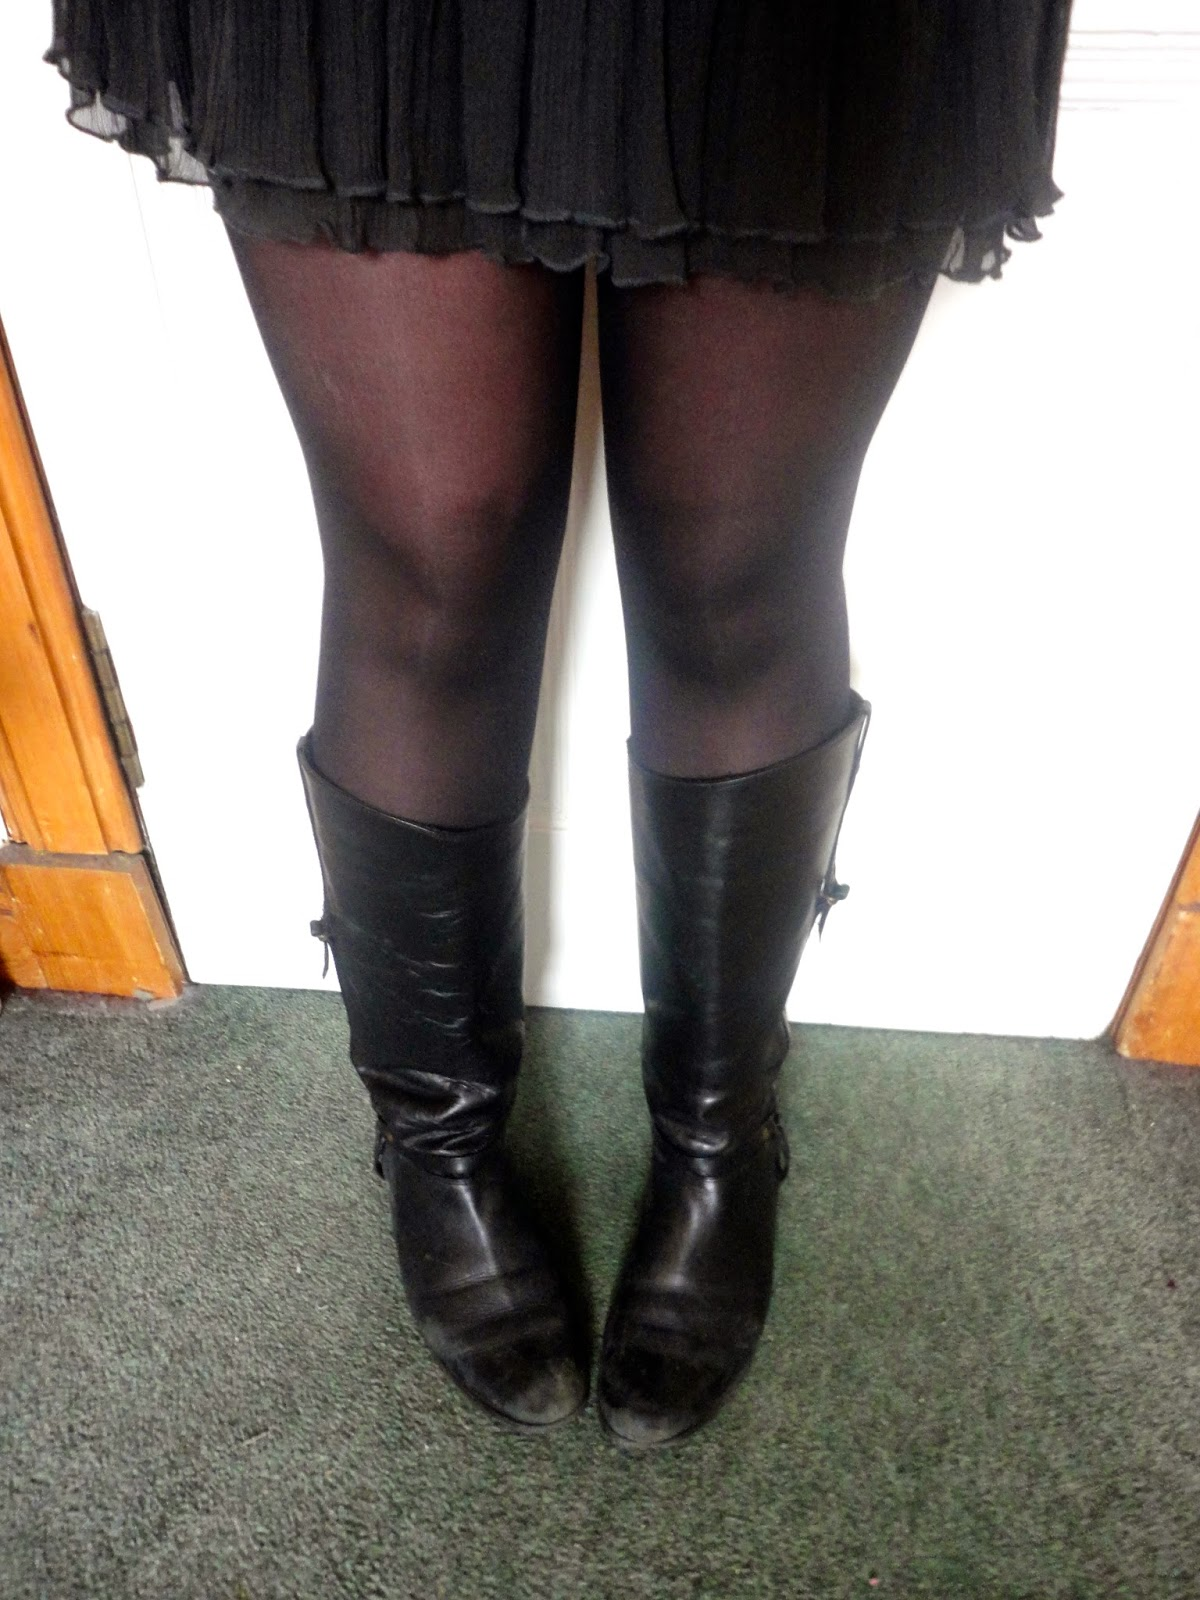 Outfit details of tall black leather riding boots, with black tights and lacy grey dress hem